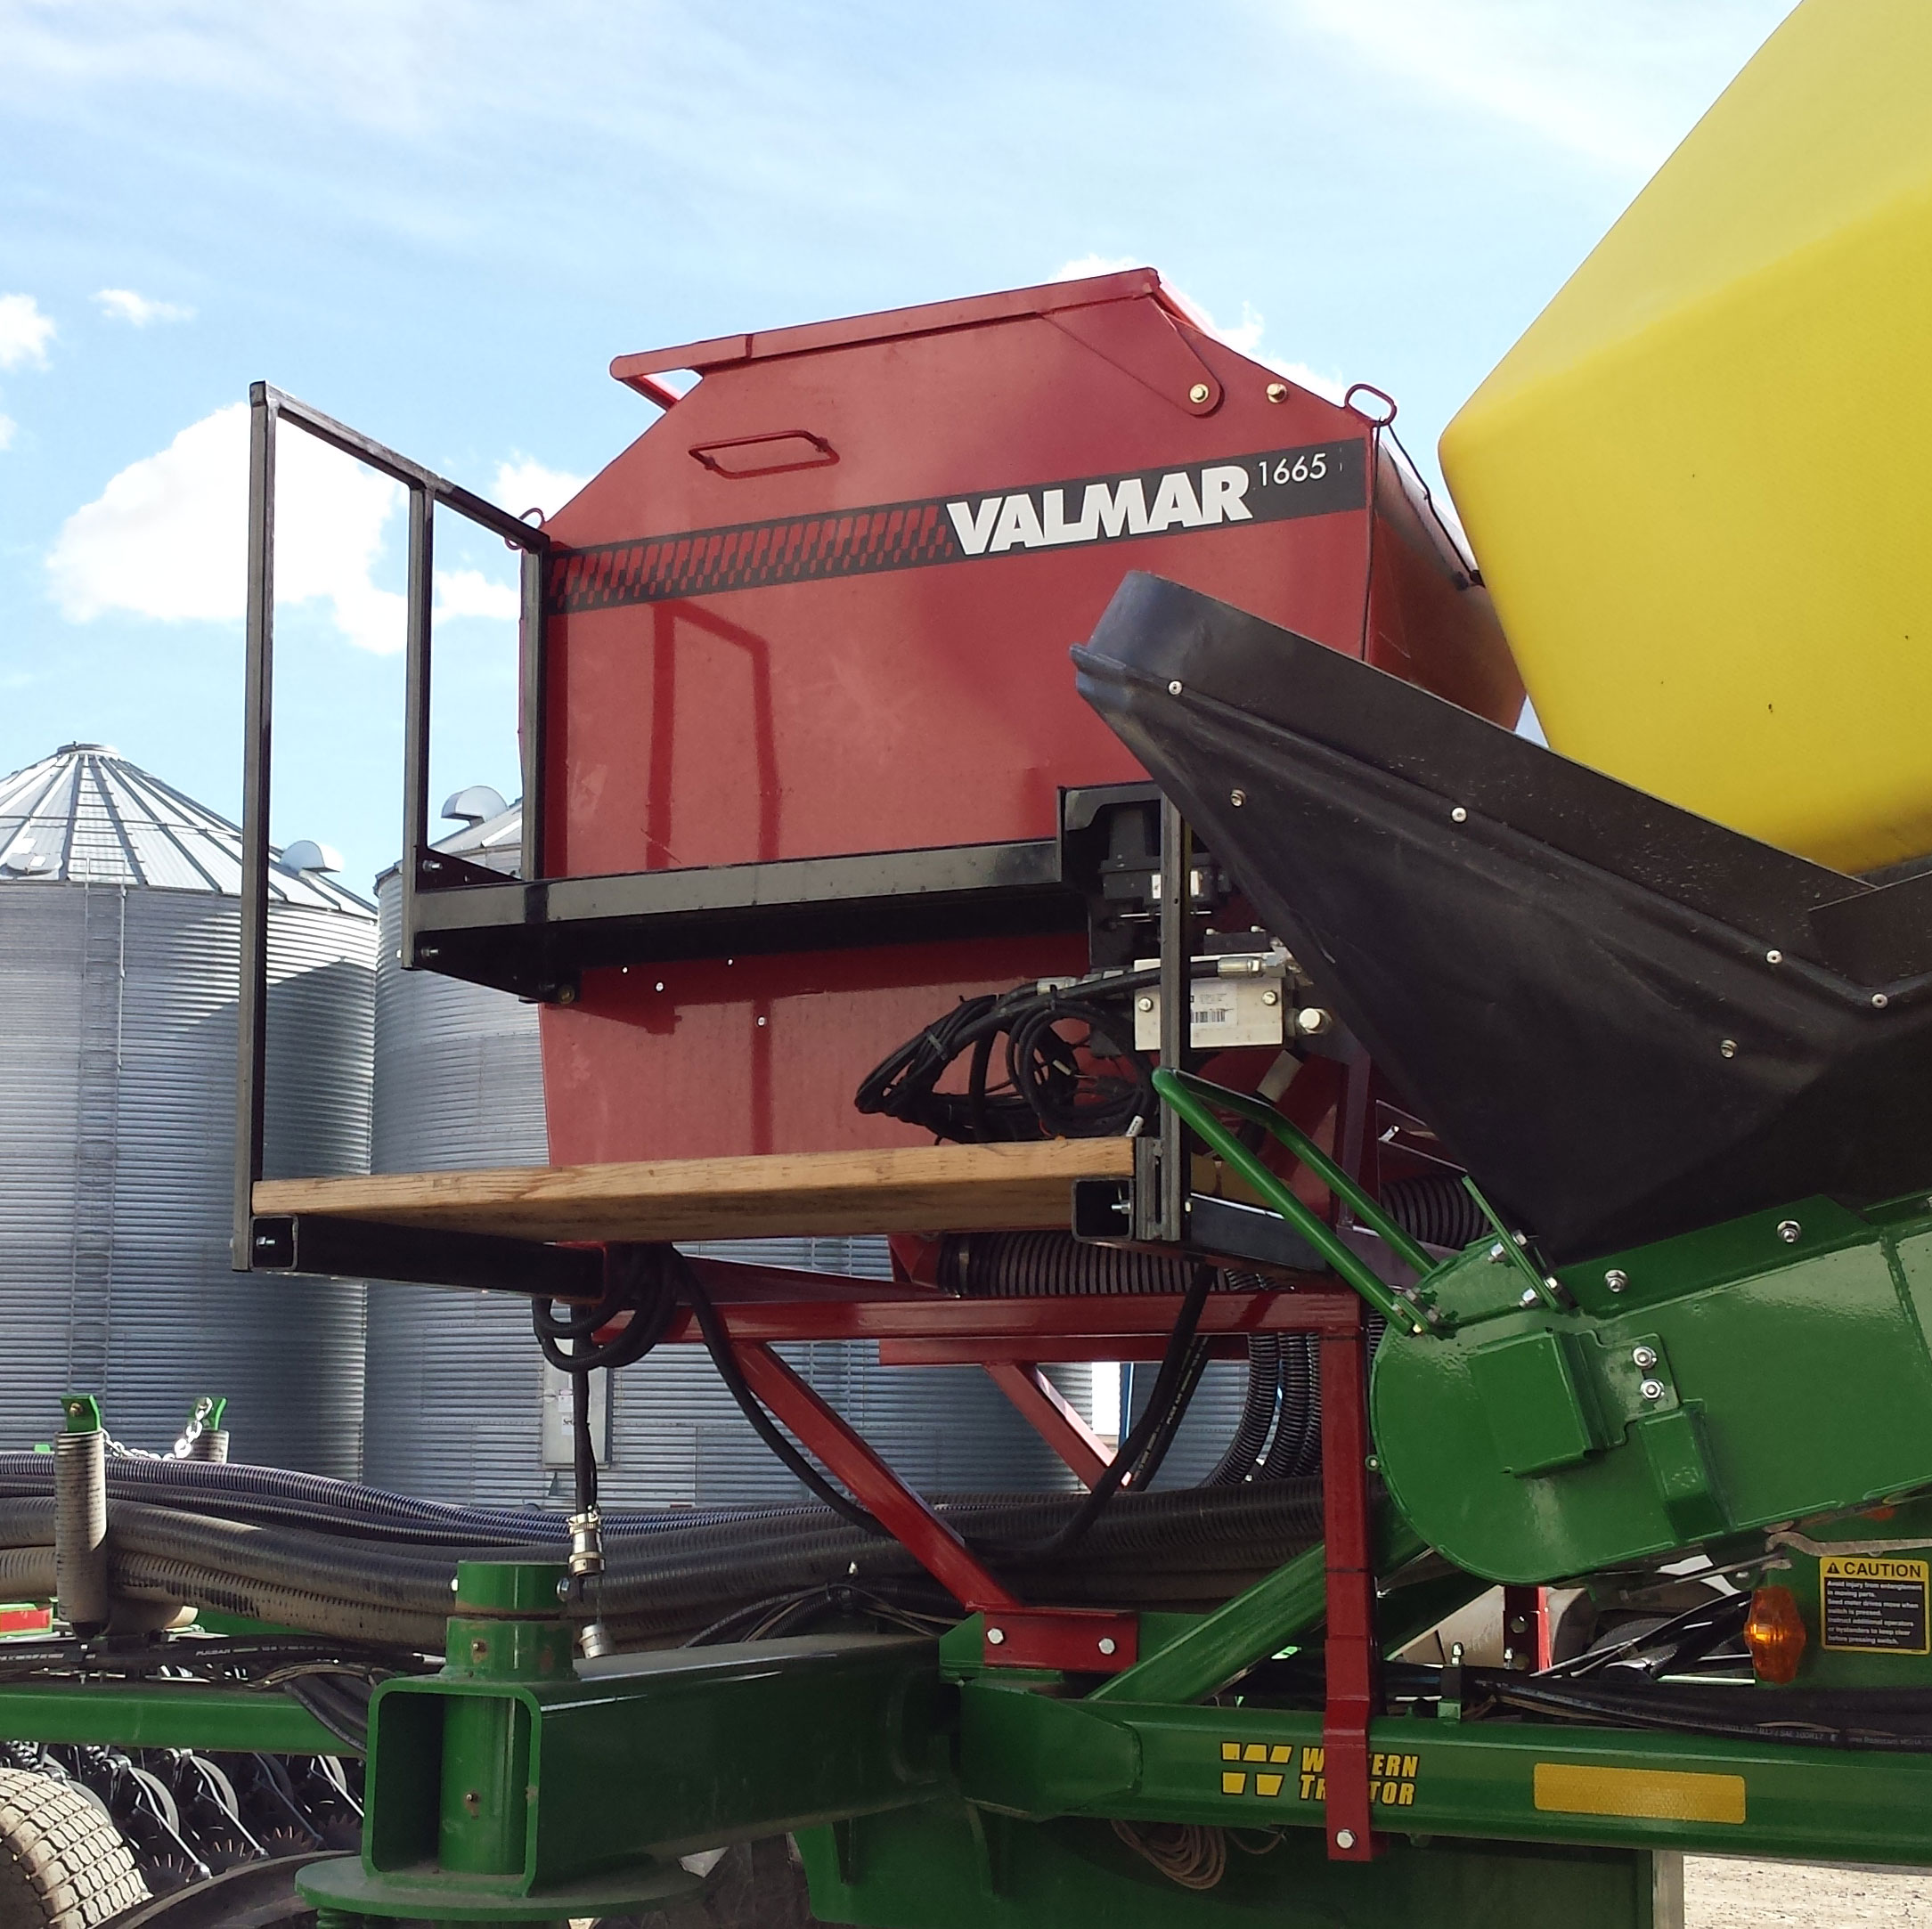 Valmar 1665 row crop and inter-row seeder